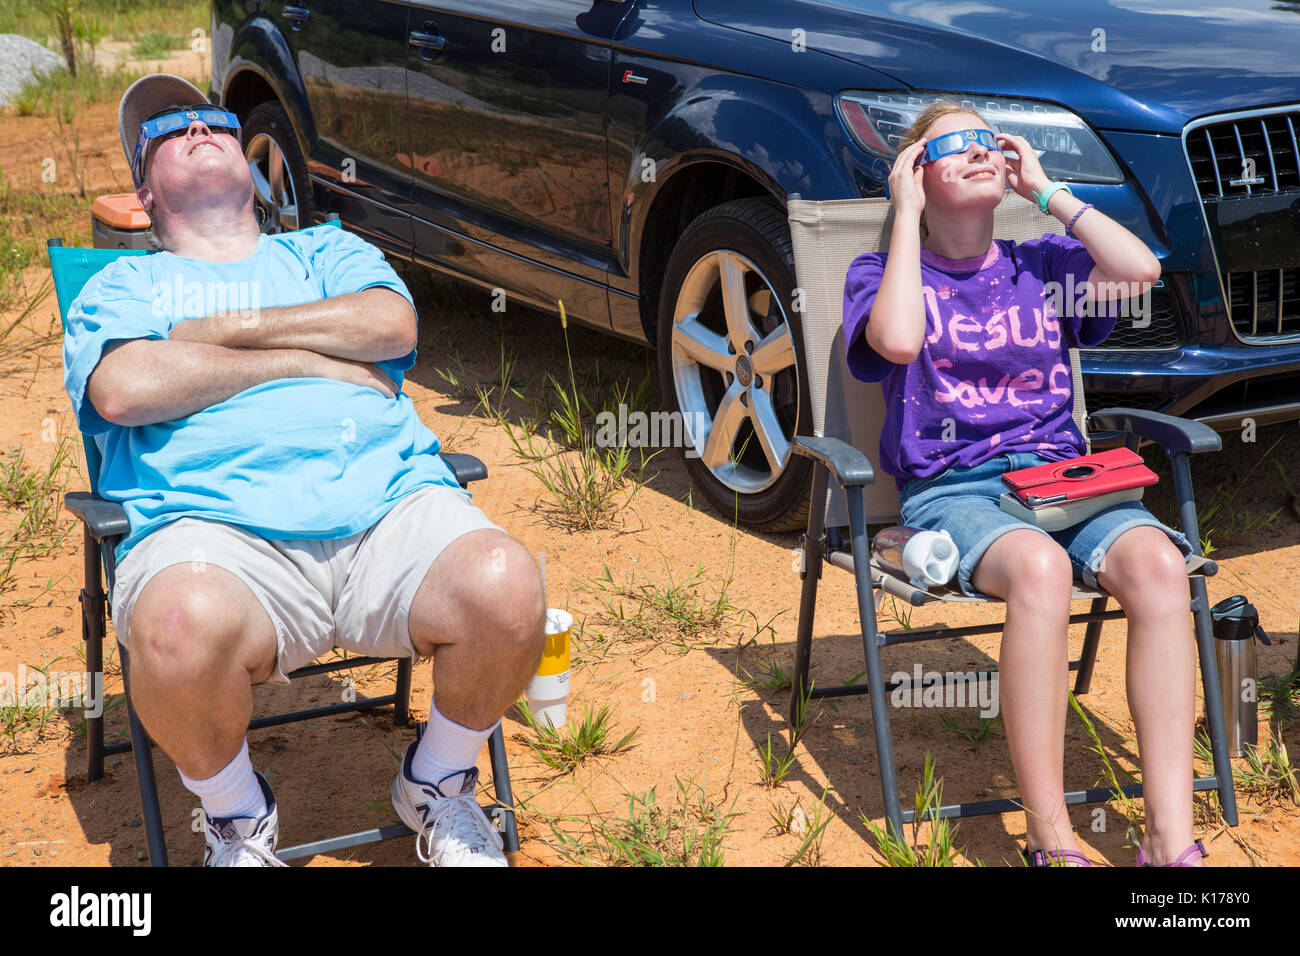 Observers wearing eclipse glasses watch the Great American Eclipse on August 21, 2017. - Stock Image